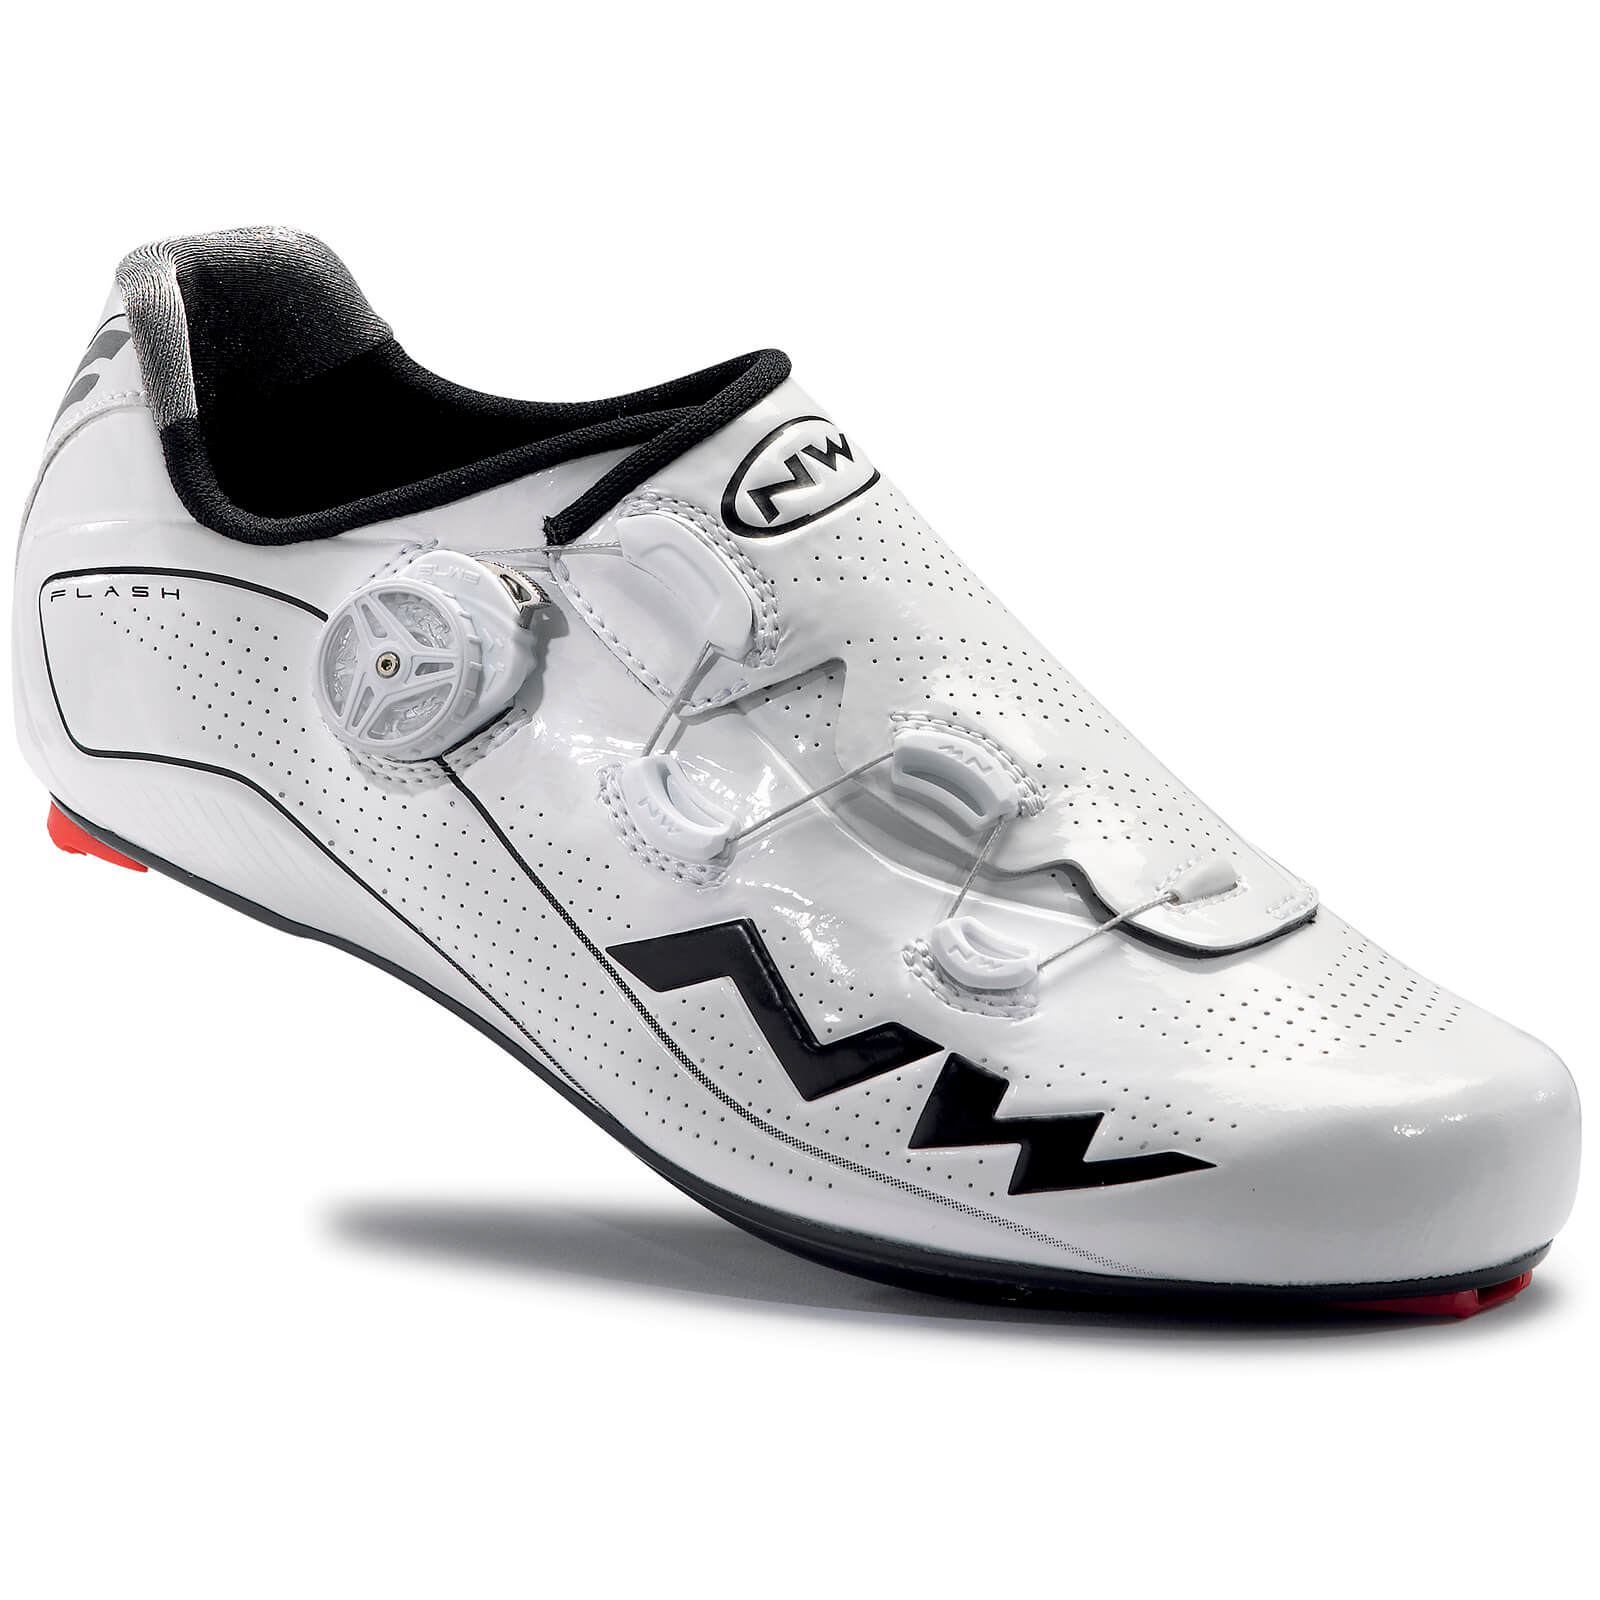 Northwave Flash Carbon Cycling Shoes - White